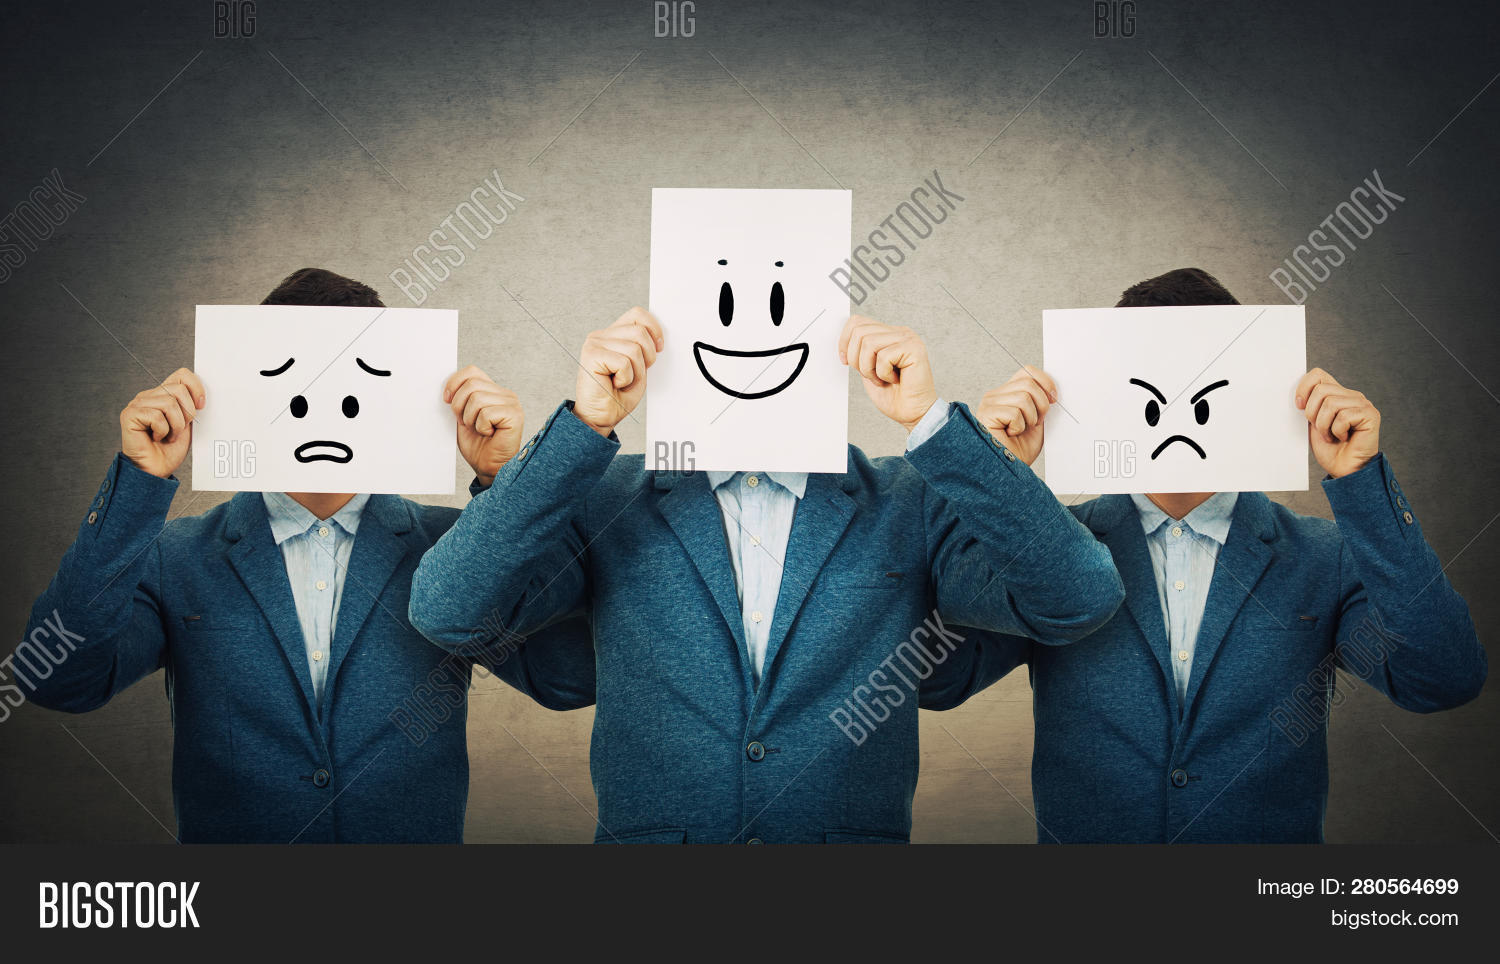 adult,anonymous,behaviour,bipolar,businessman,communication,concept,conspirancy,cover,deception,different,disorder,emoticon,emotion,emotional,expression,face,fake,feeling,hand,happy,head,health,hide,holding,identity,mad,mask,mental,mood,multipolar,nervous,paper,people,person,personality,presentation,psychology,sad,schizophrenia,sheet,showing,sincerity,sketch,smile,split,suit,three,truth,young